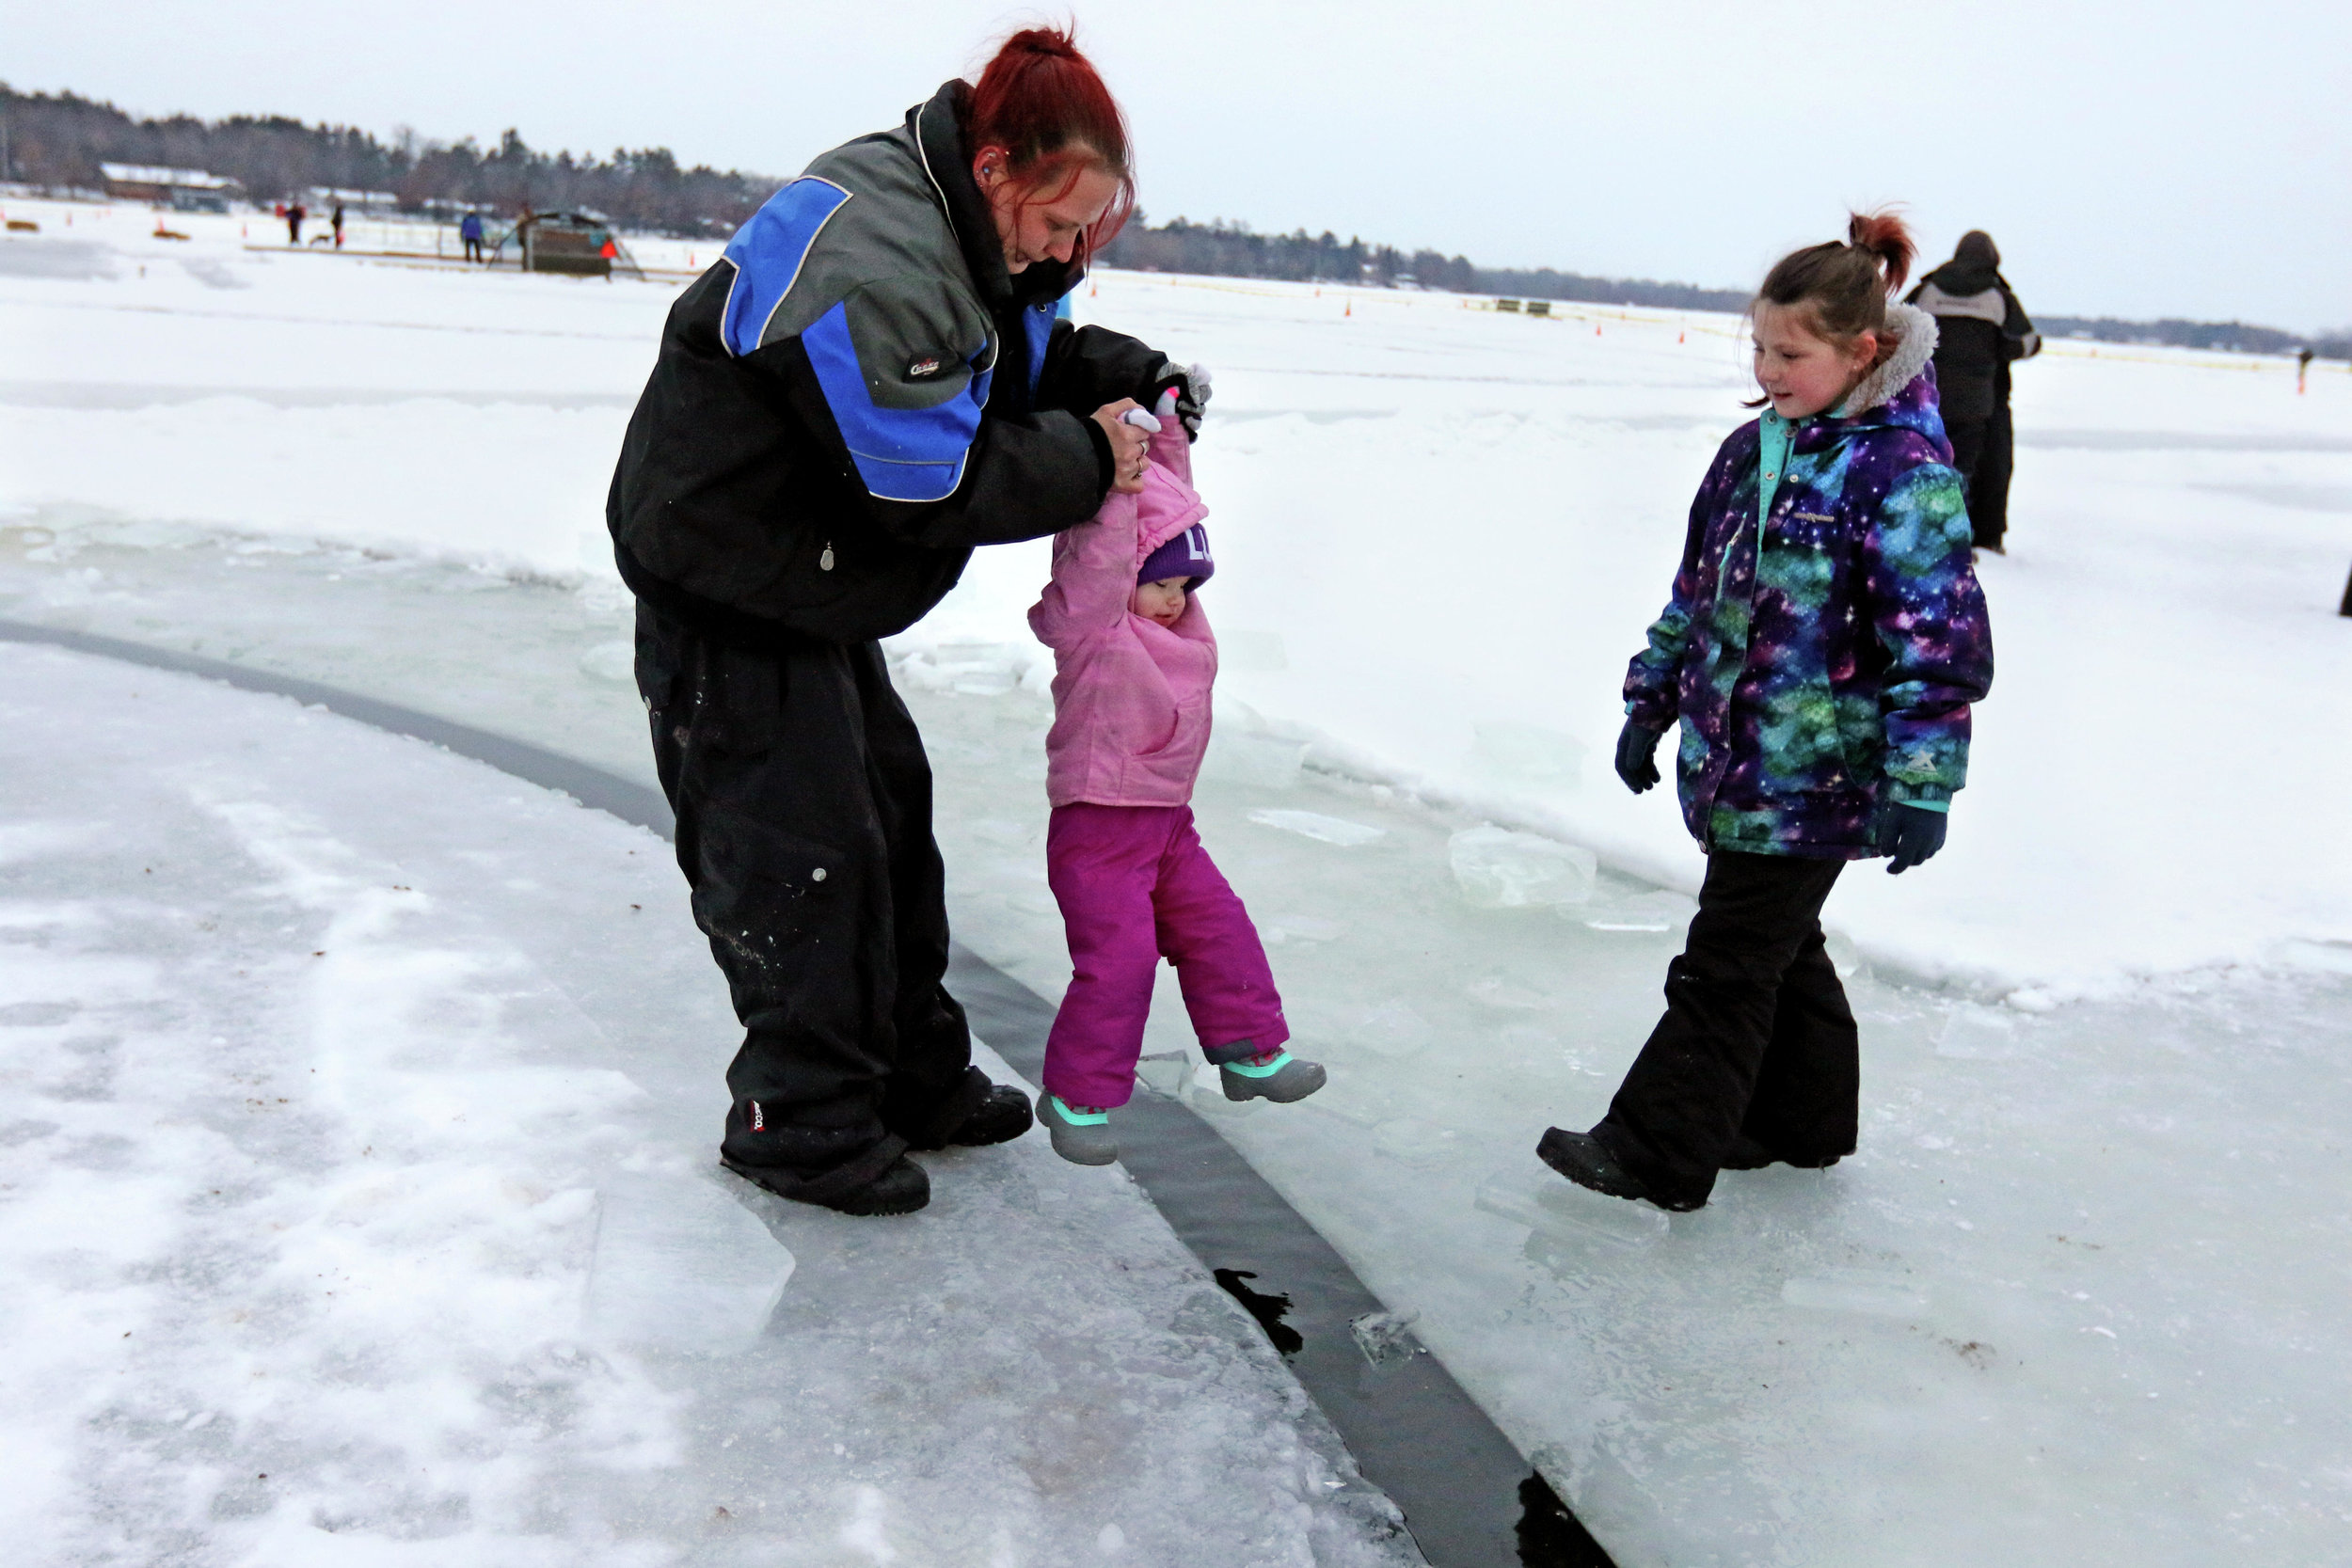 Annmarie Lyon assists daughter Paisley Lyon off of the spinning ice carousel with the help of daughter Zoë Lyon on the other side Saturday, Jan. 12, during the second annual Sunny Zwilling Memorial Ice Carousel Extravaganza in Little Falls. Kelly Humphrey / Forum News Service